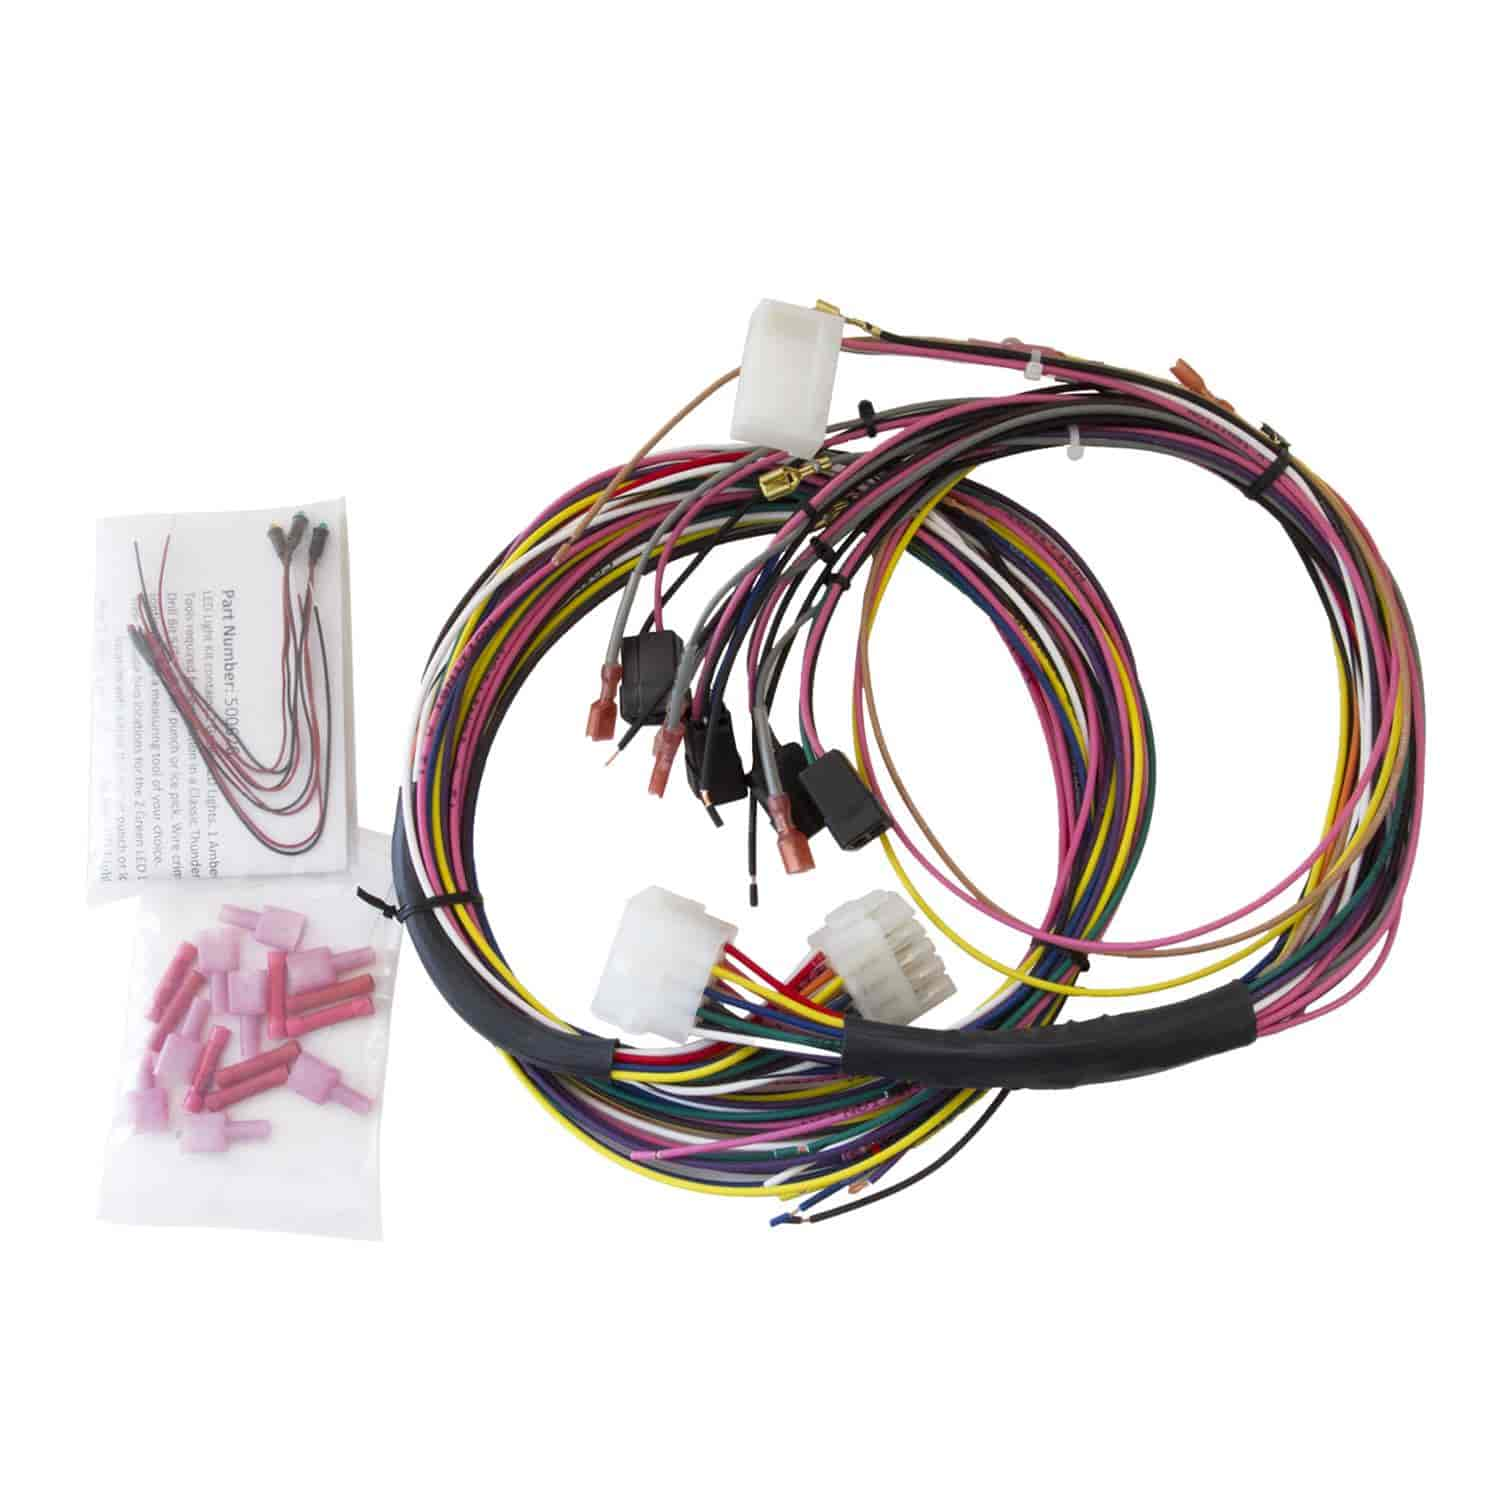 105 2198 auto meter 2198 replacement wiring harness universal jegs VW Wiring Harness Kits at gsmx.co